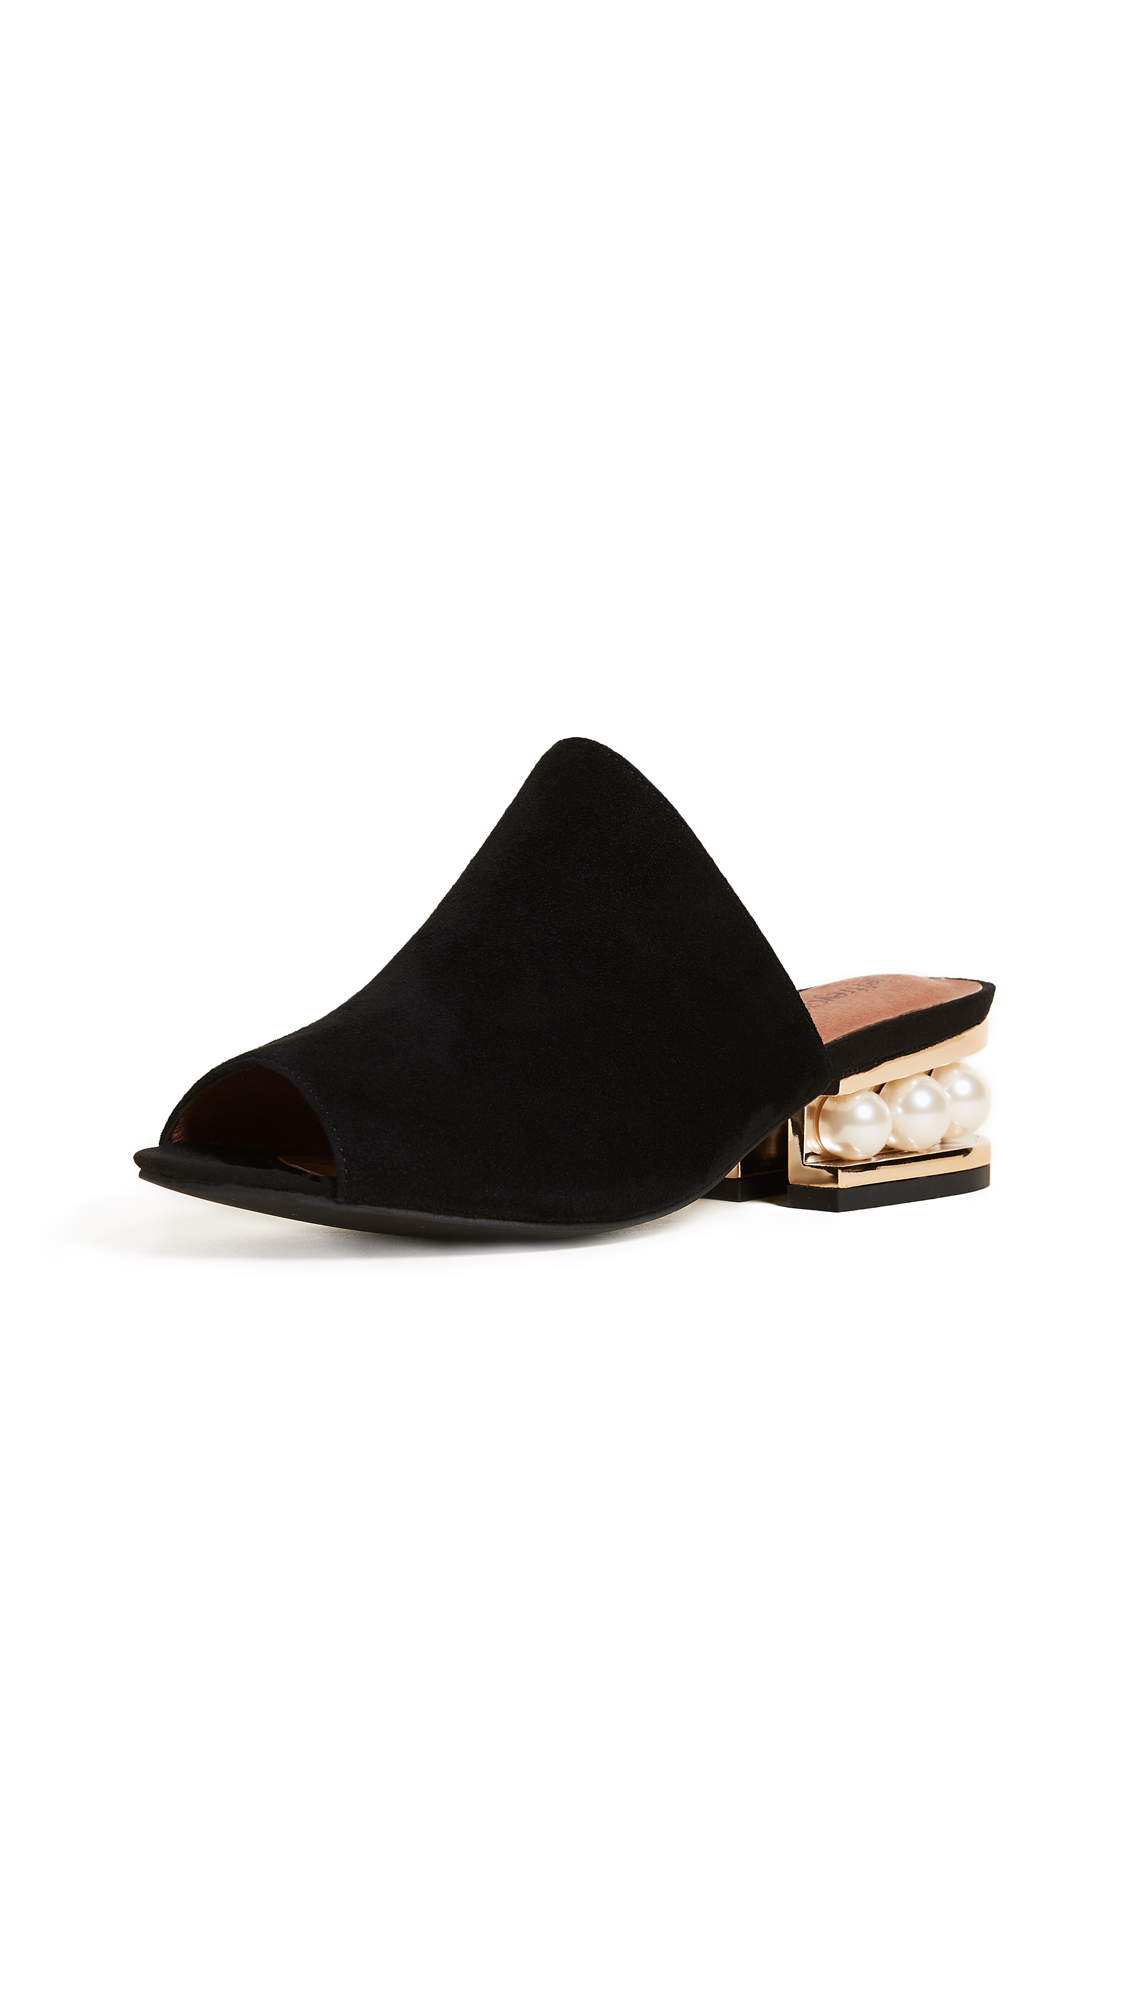 Jeffrey Campbell Arcita Mule Sandals - Black/Gold